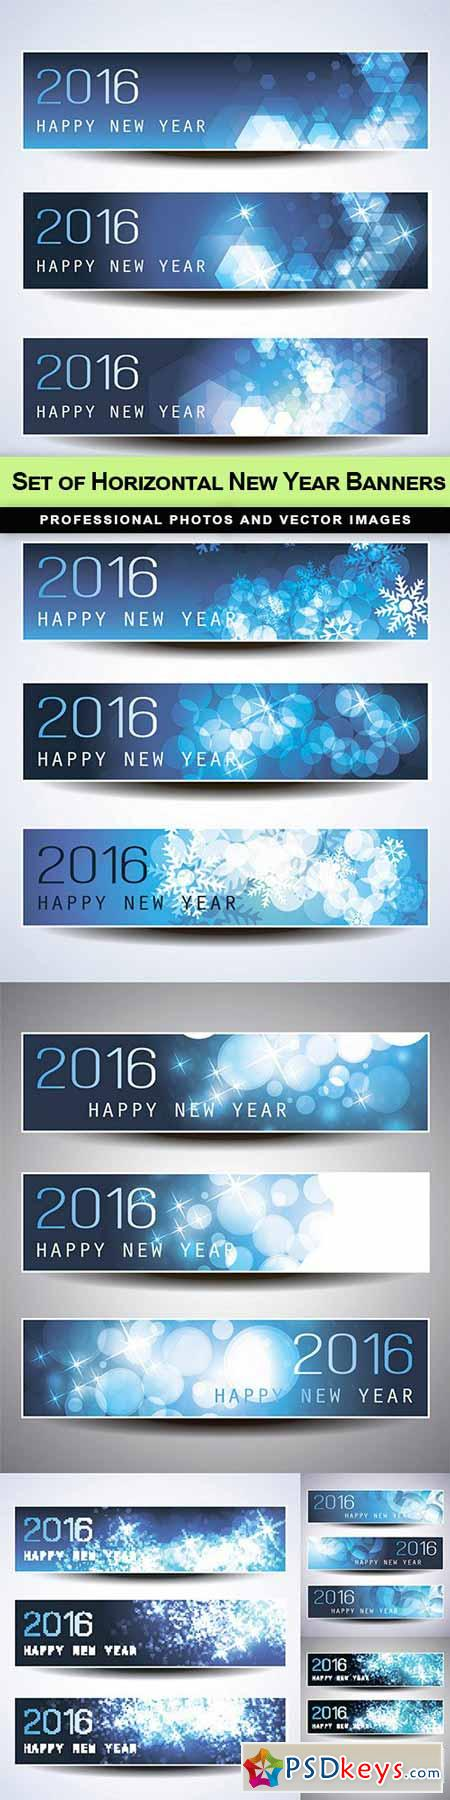 Set of Horizontal New Year Banners - 6 EPS